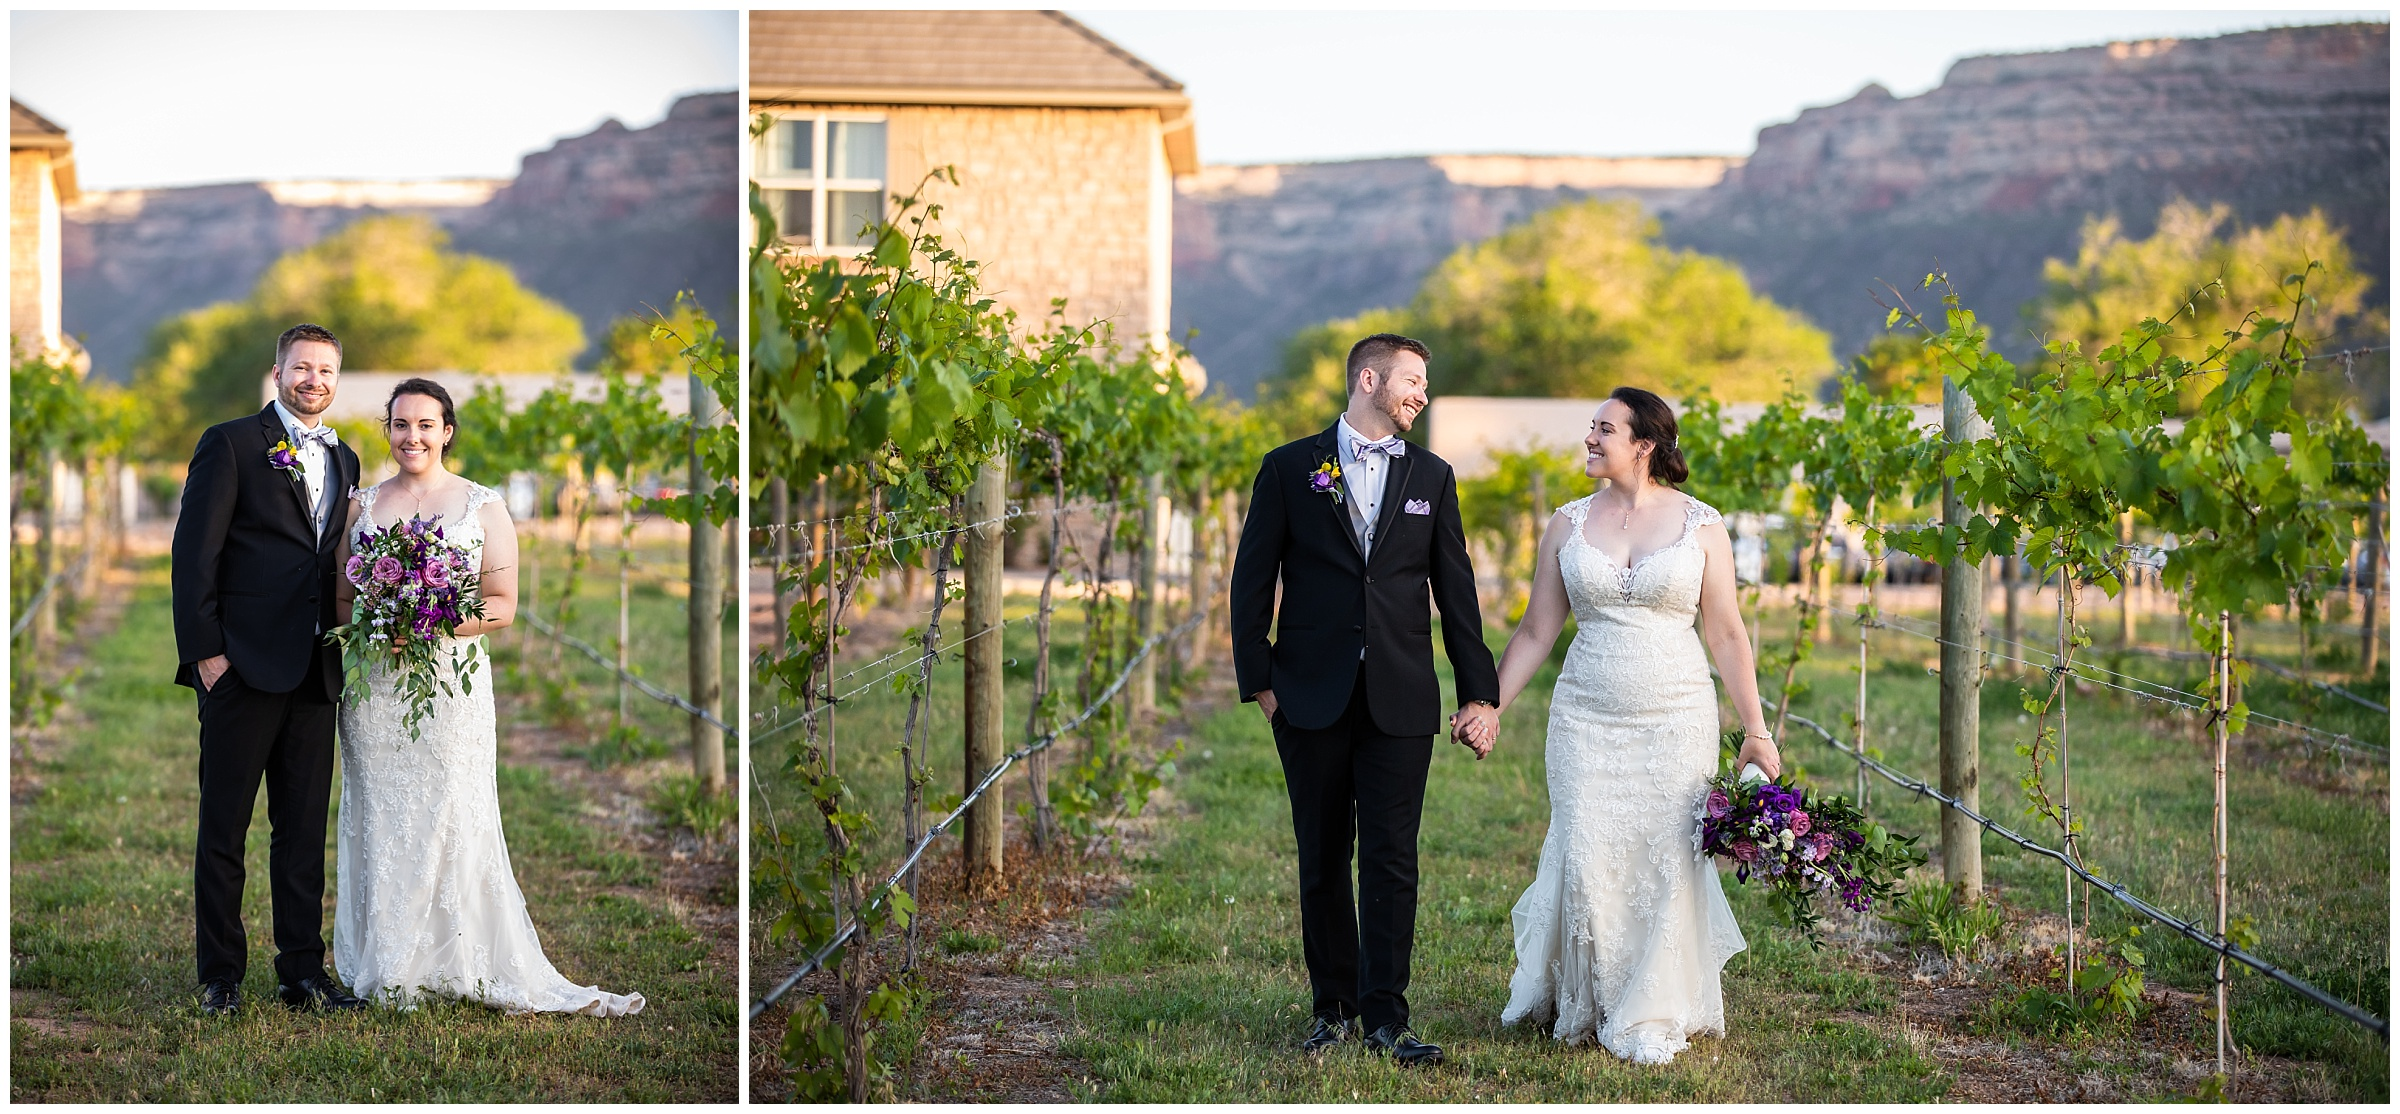 I always love grabbing the bride and groom for a few photos with that pretty evening light.